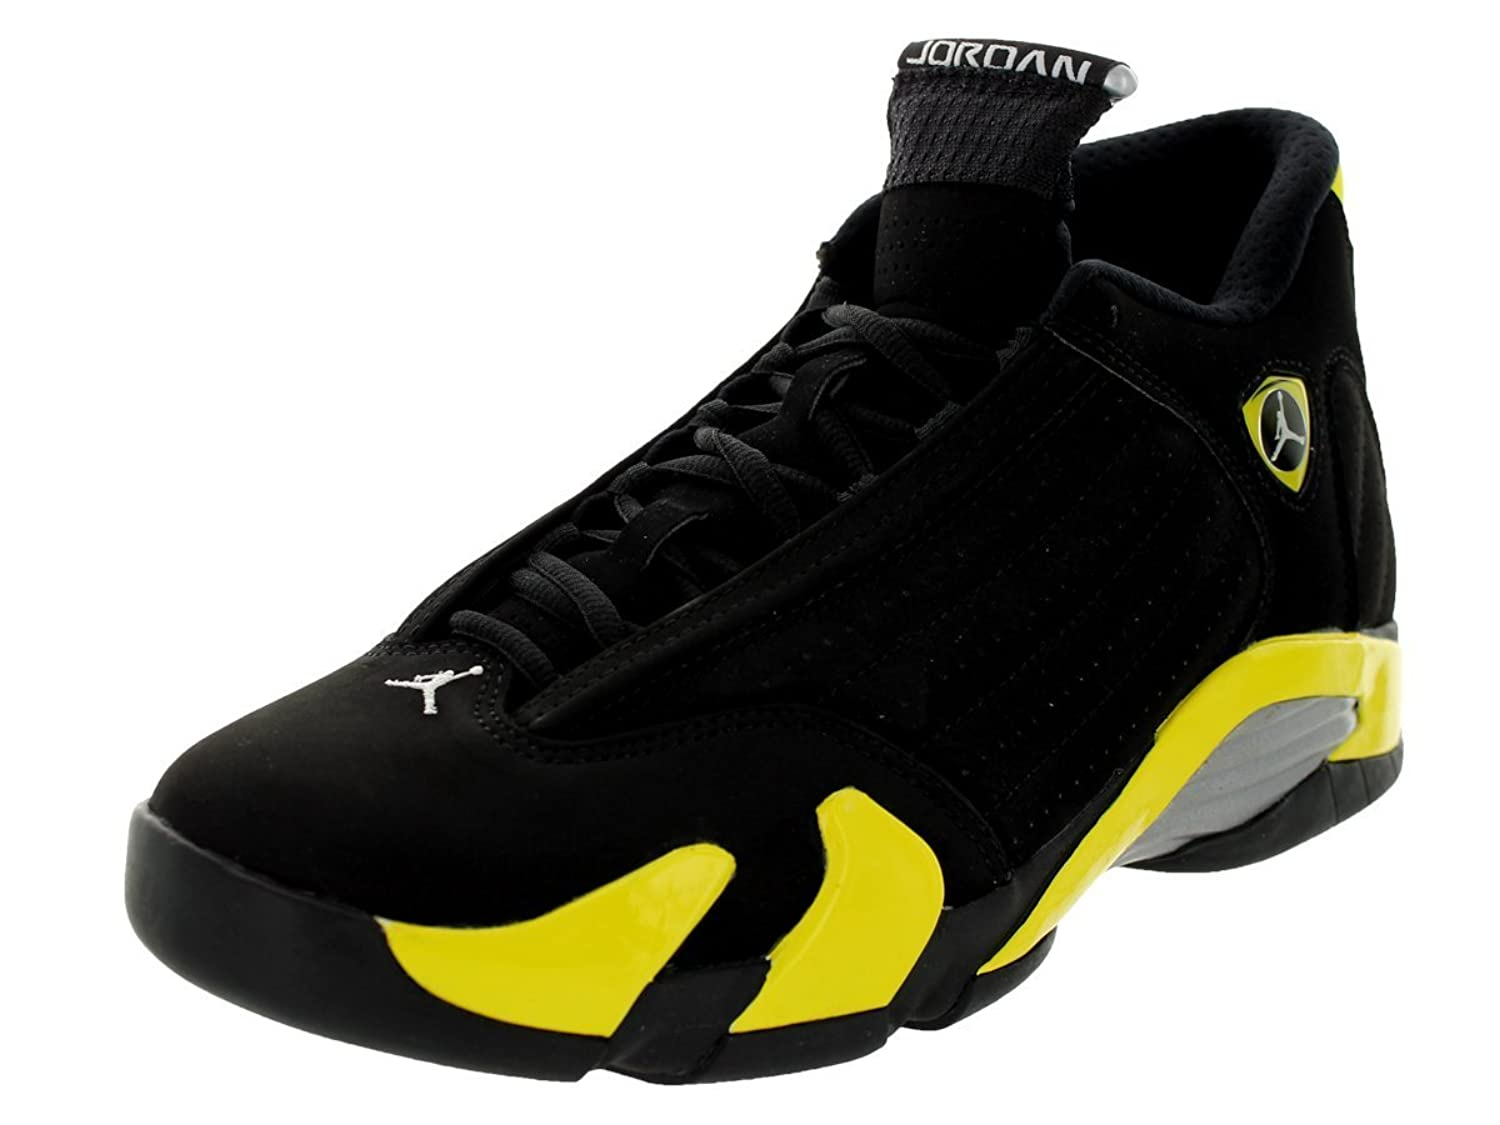 nike jordan shoes for men